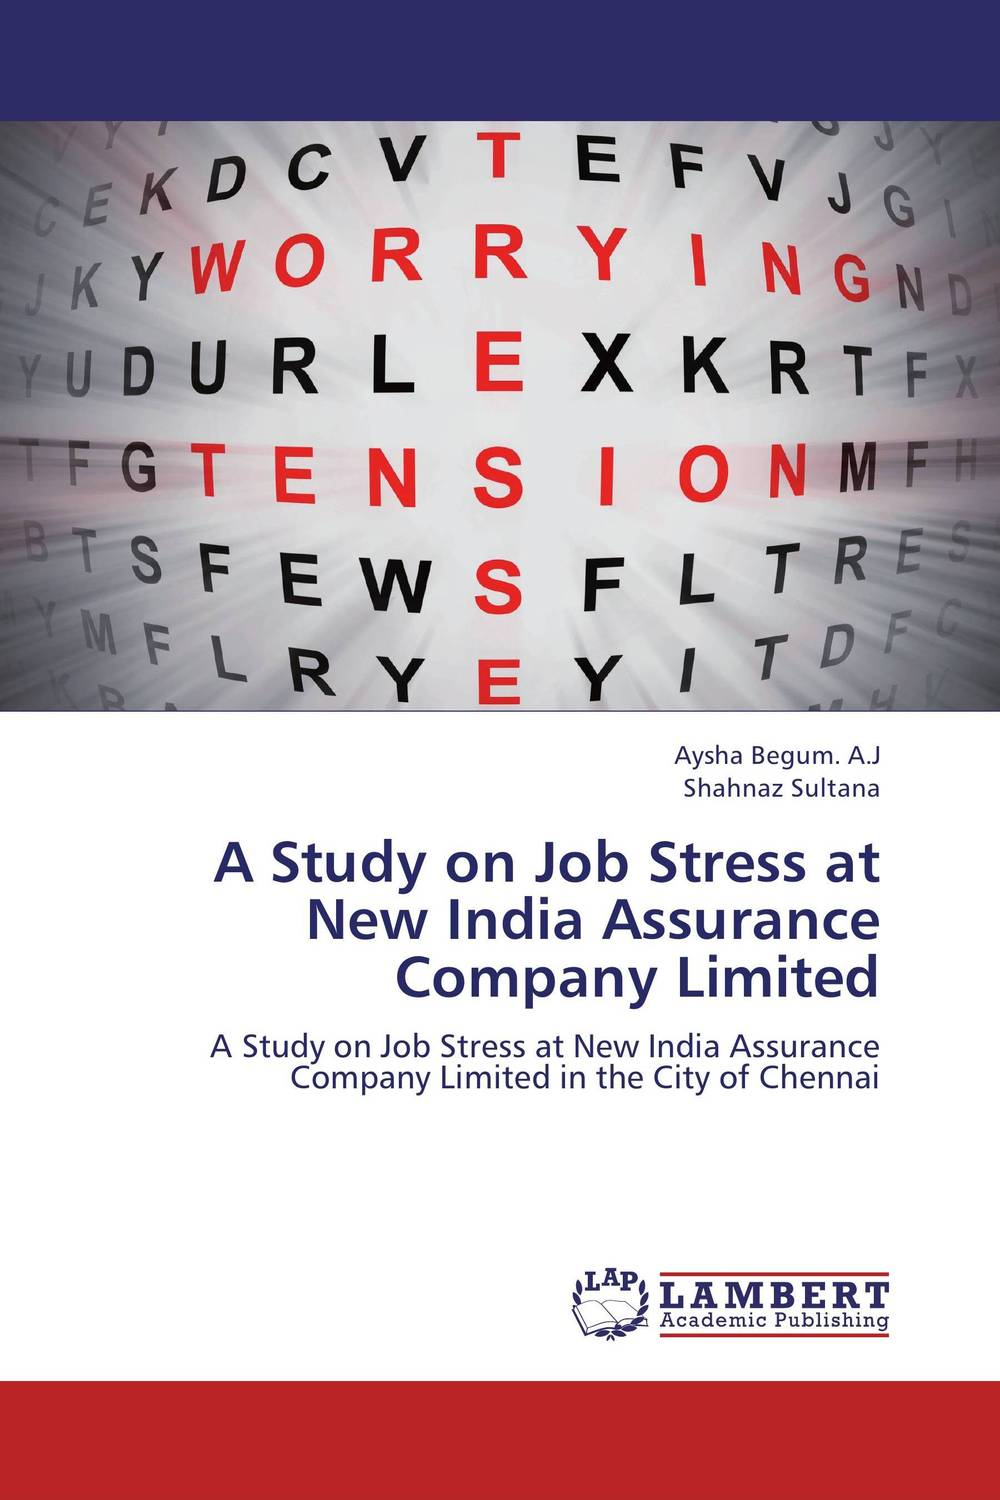 A Study on Job Stress at New India Assurance Company Limited sadiq sagheer job stress role conflict work life balance impacts on sales personnel